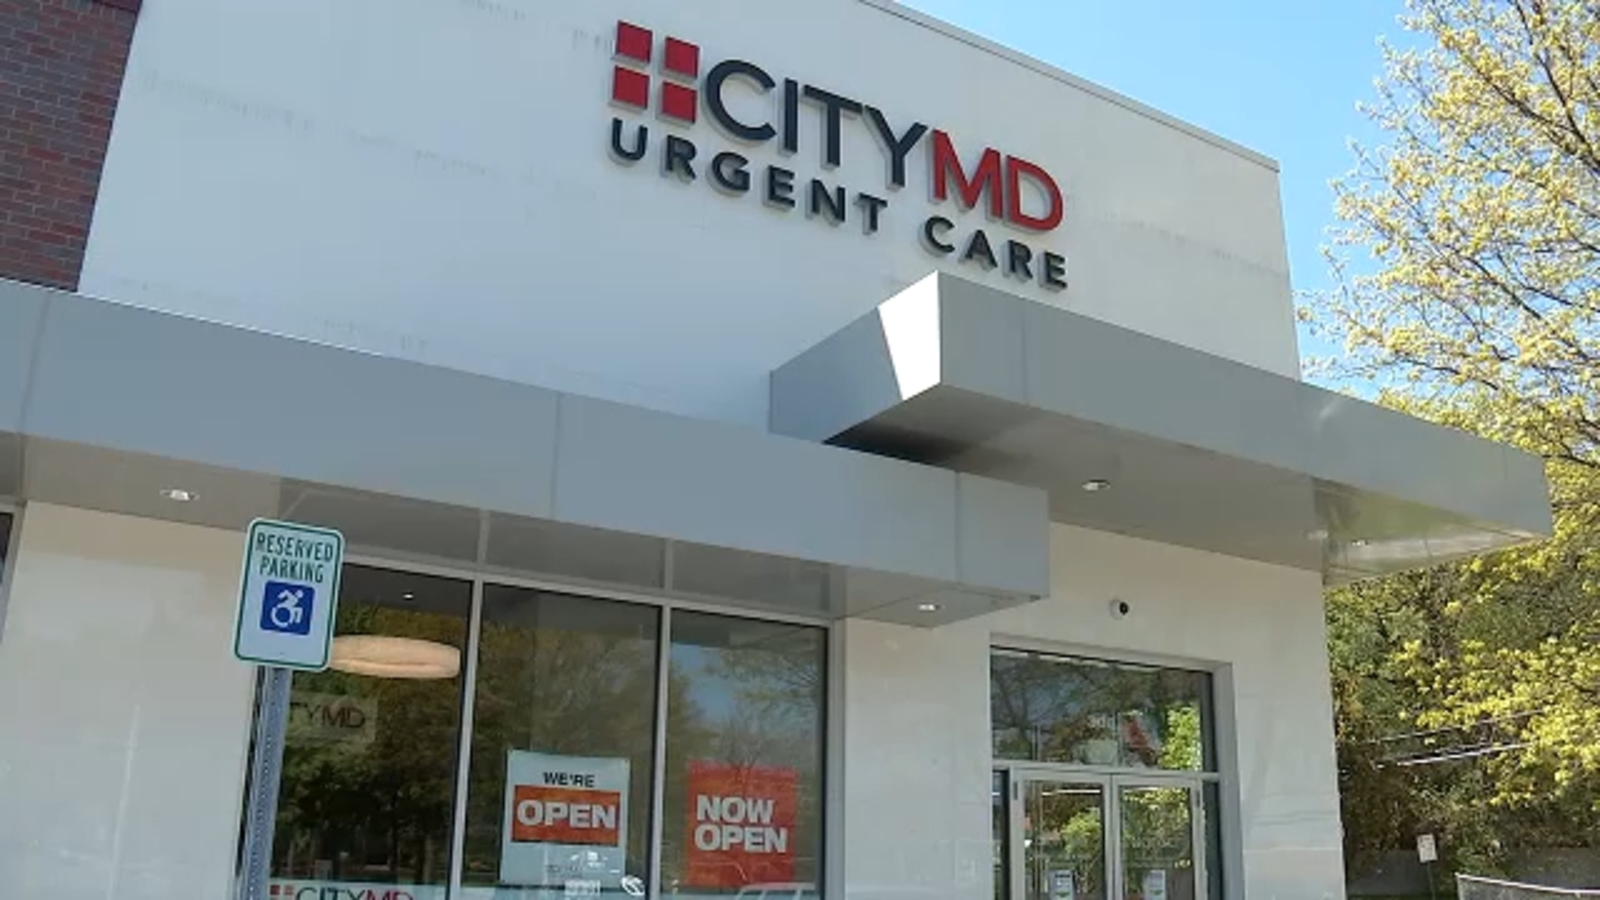 Covid Nyc Update Citymd Closing Earlier Due To Long Coronavirus Testing Lines Staff Staying Late Abc7 New York